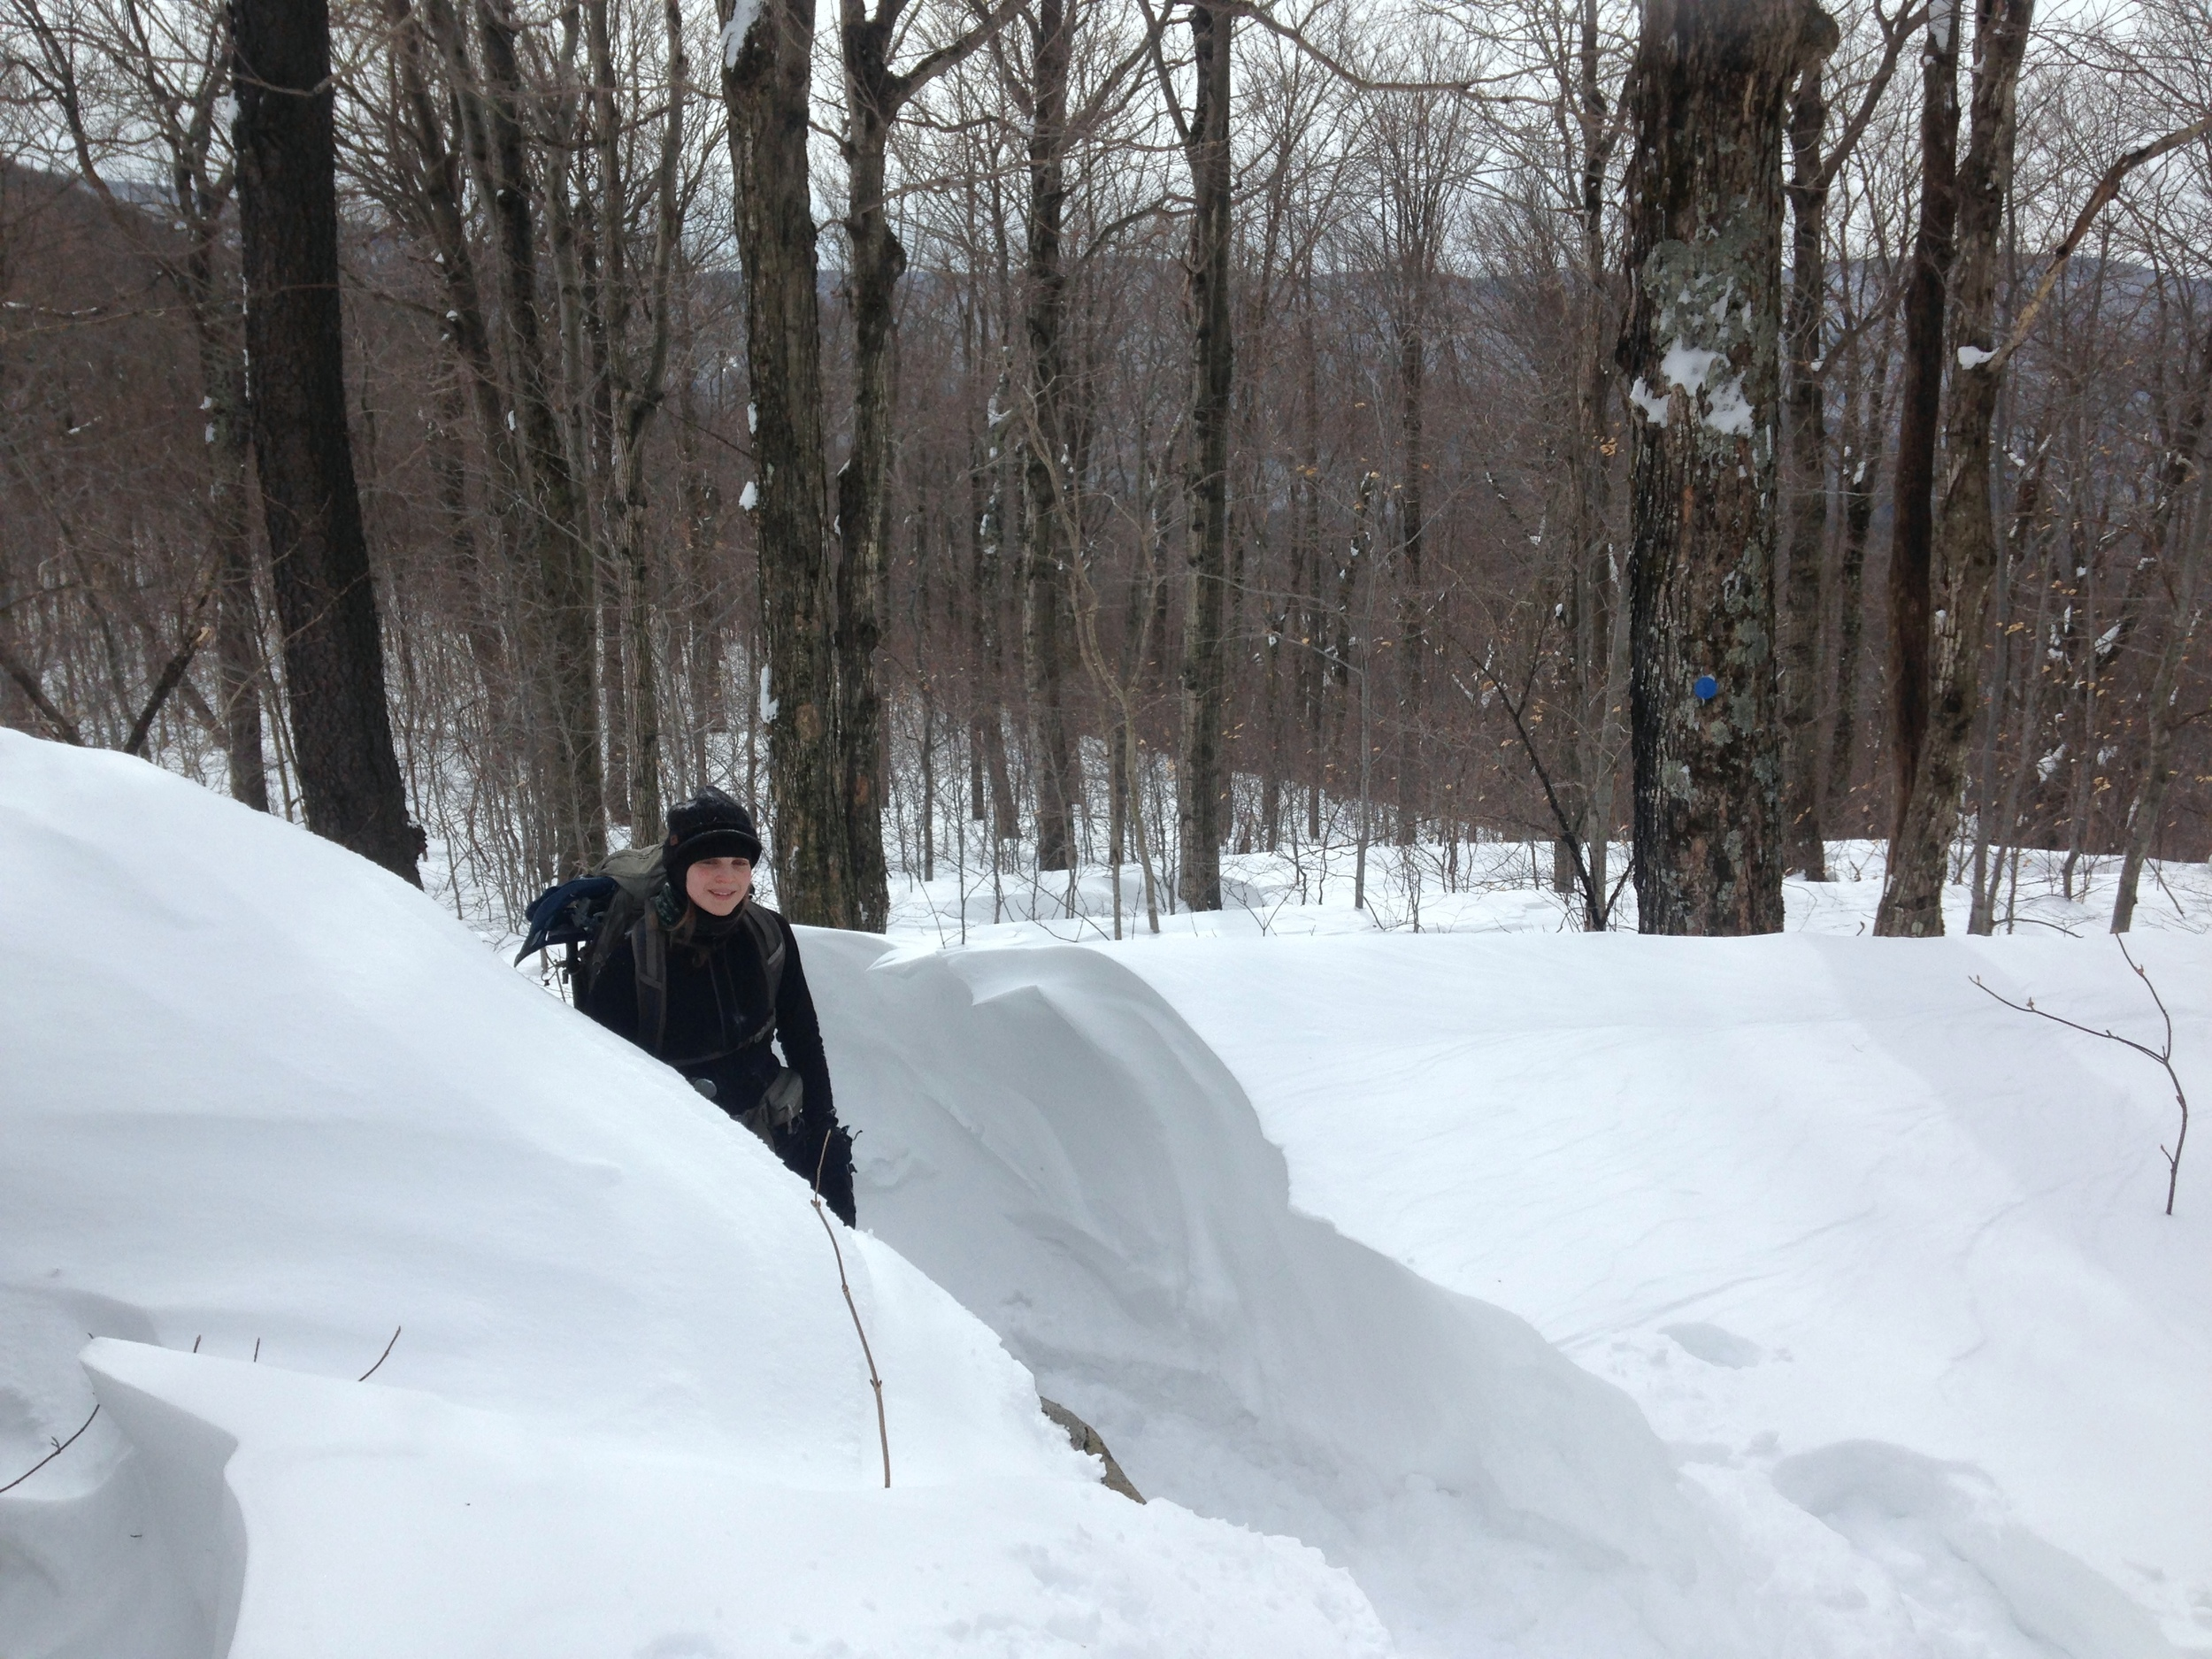 Elizabeth with a 4' snow cornice